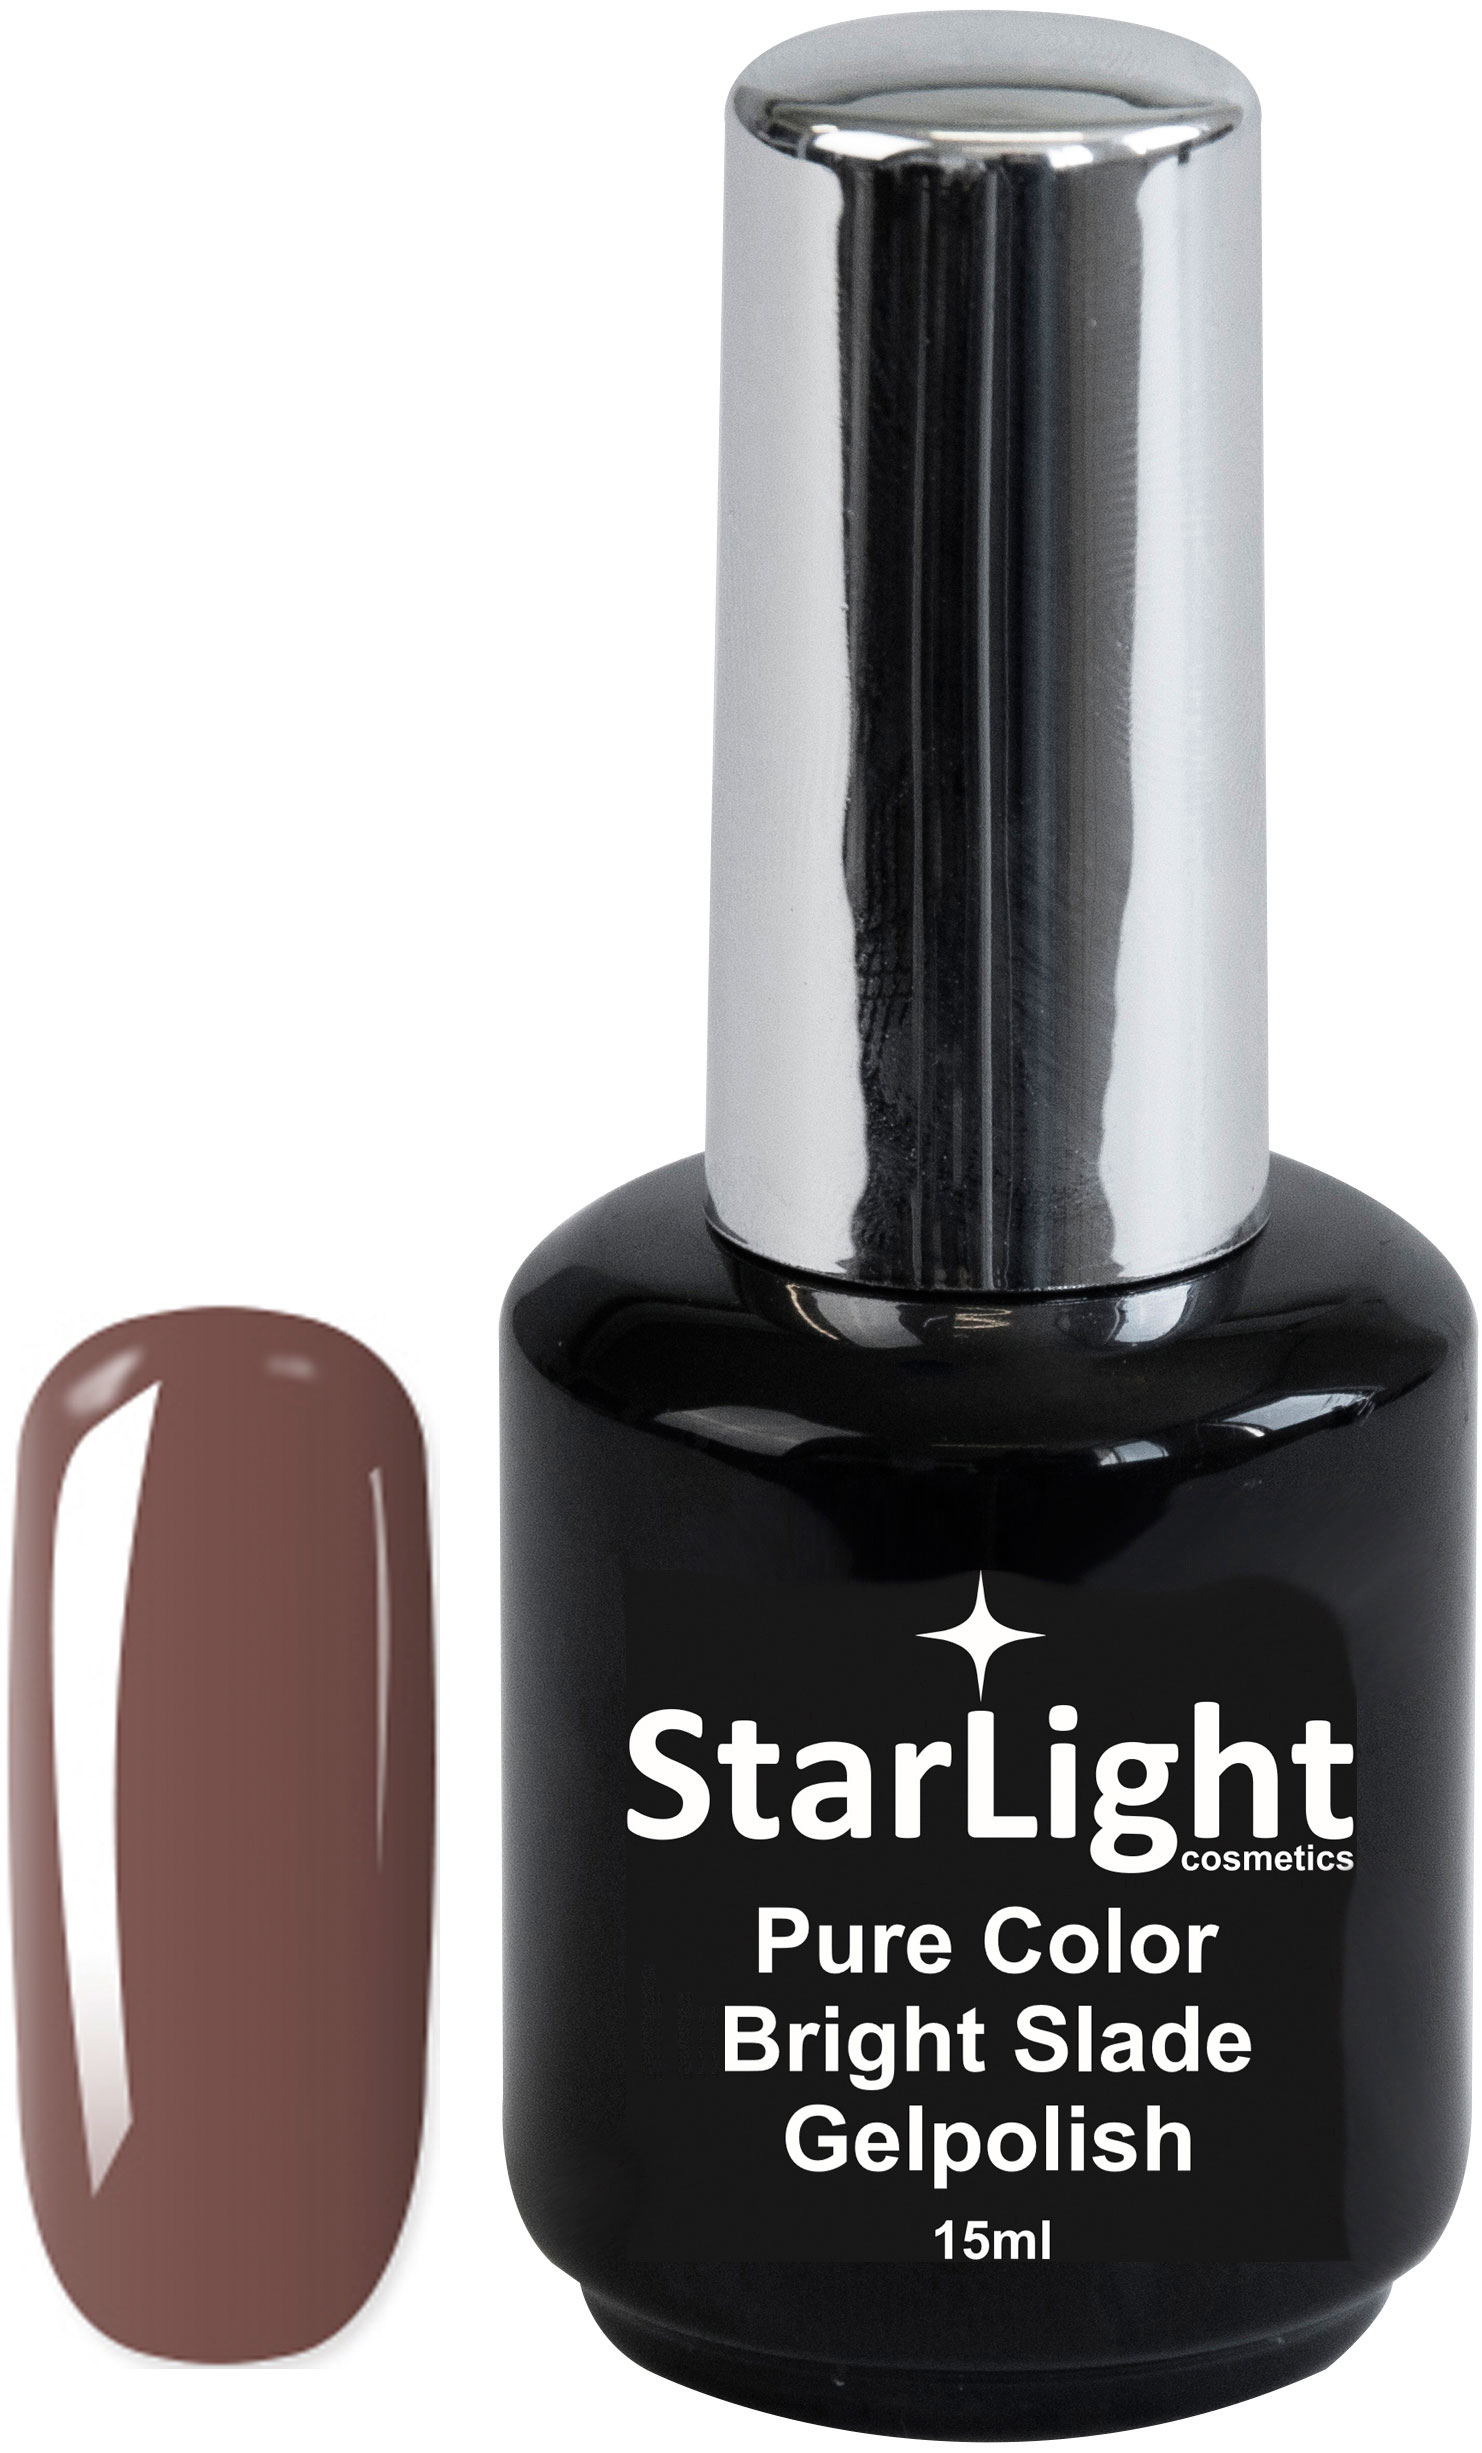 Naglar Gelpolish Pure Color Bright Slade - 15 ml